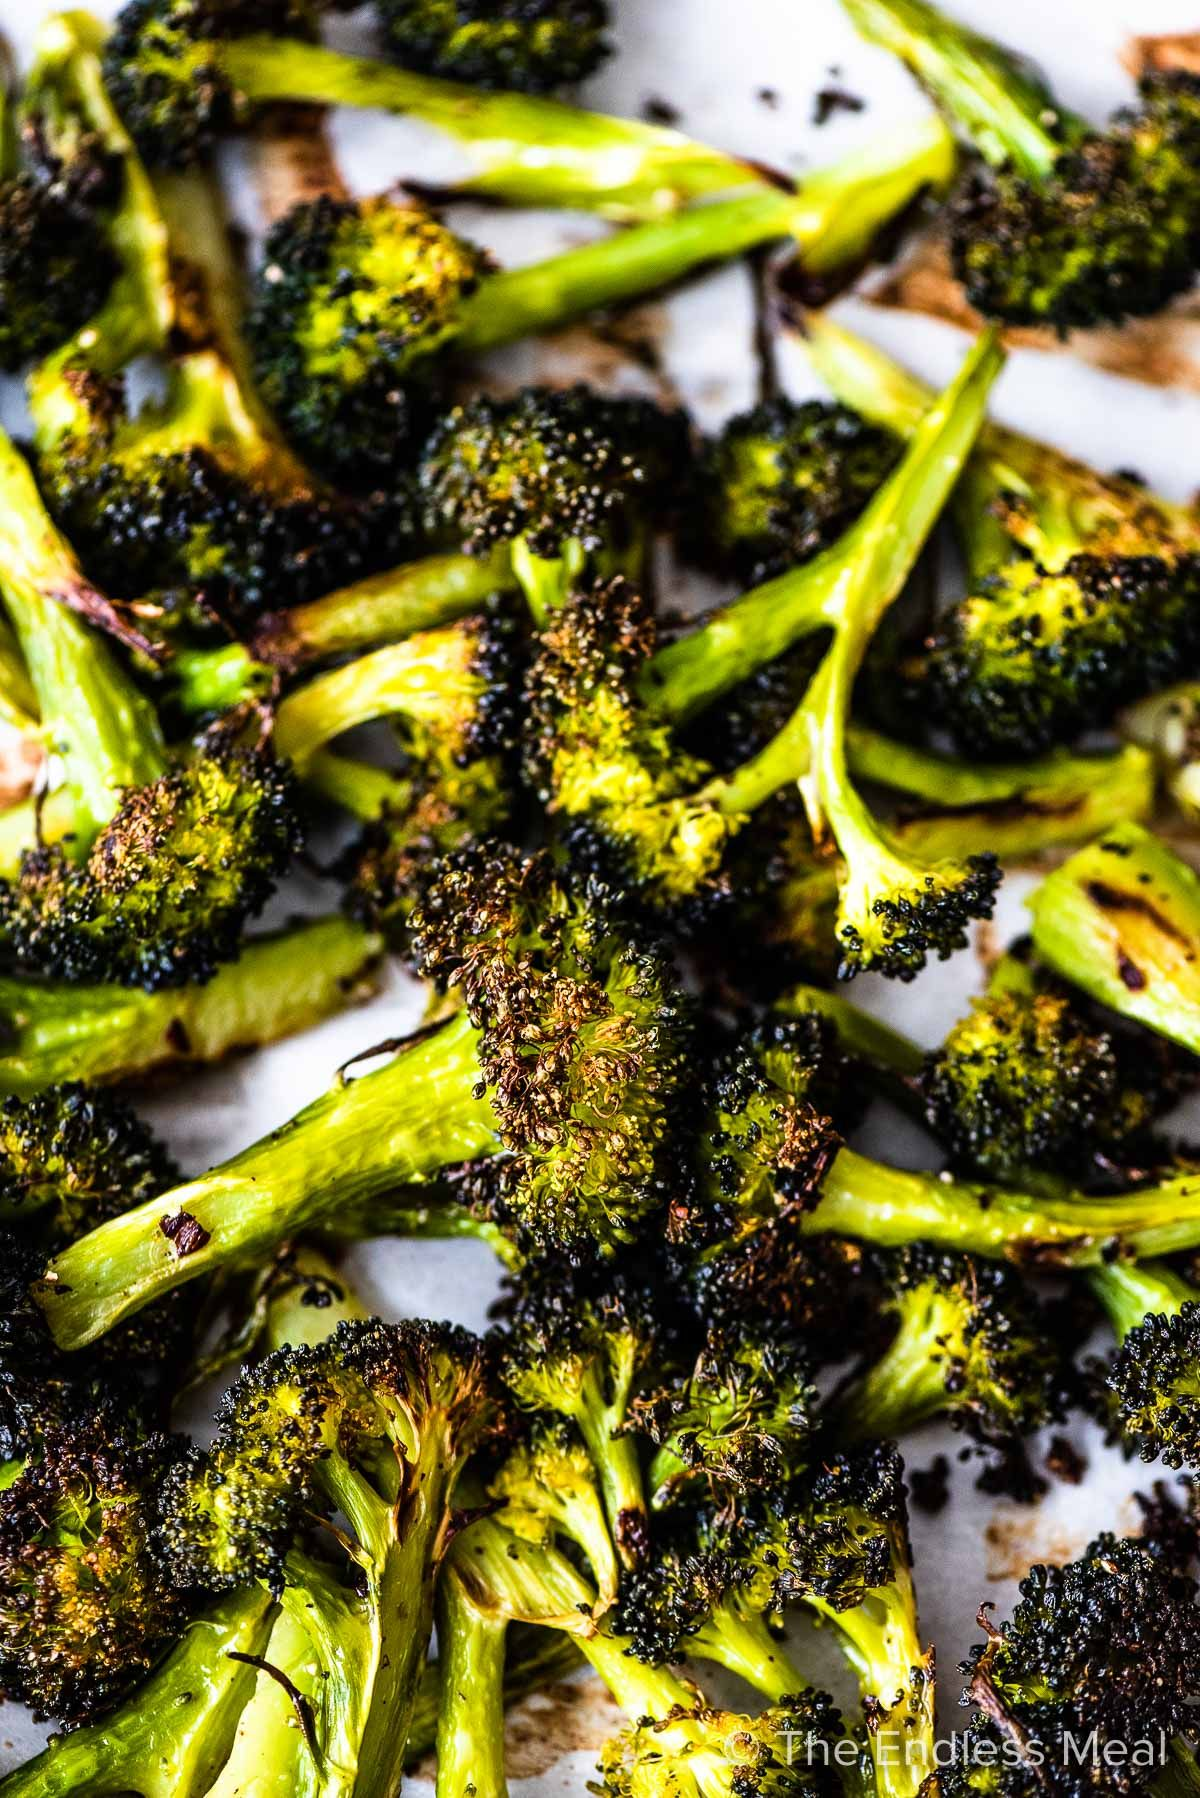 Pin To Save For Later Roasted Broccoli Is The Best Broccoli Ever It S A Super Easy To Make Side Dis Roasted Broccoli Recipe Roasted Broccoli Broccoli Recipes